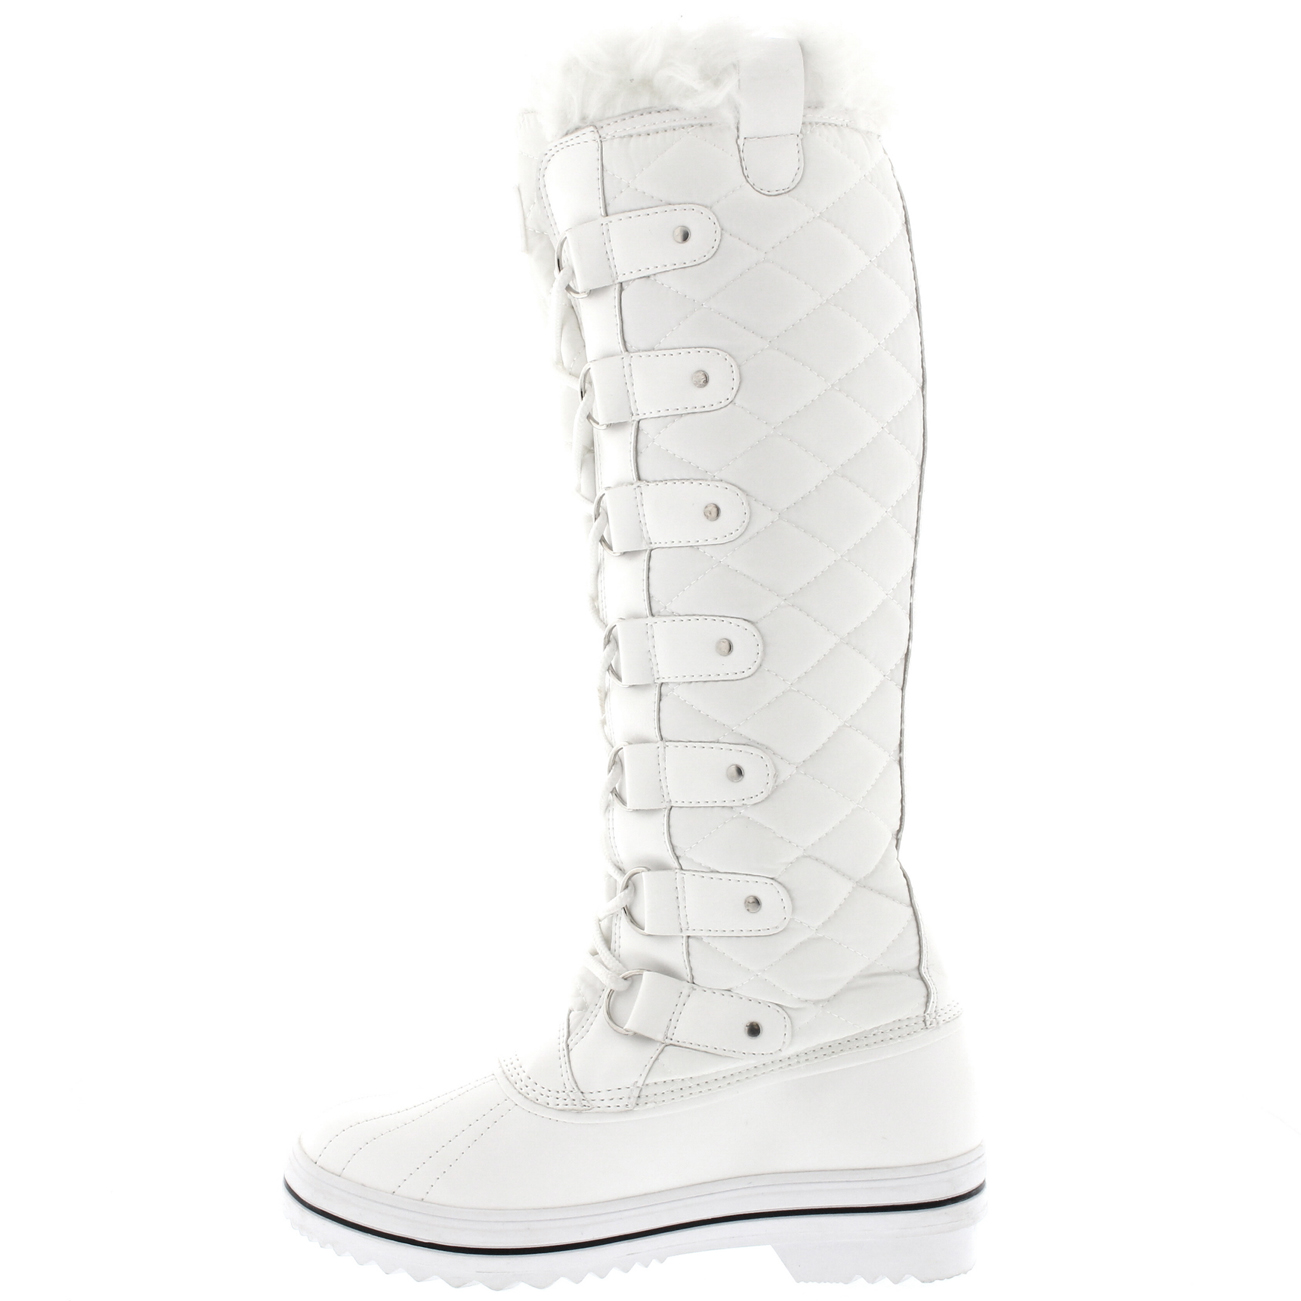 Muck Snow Boots - Cr Boot